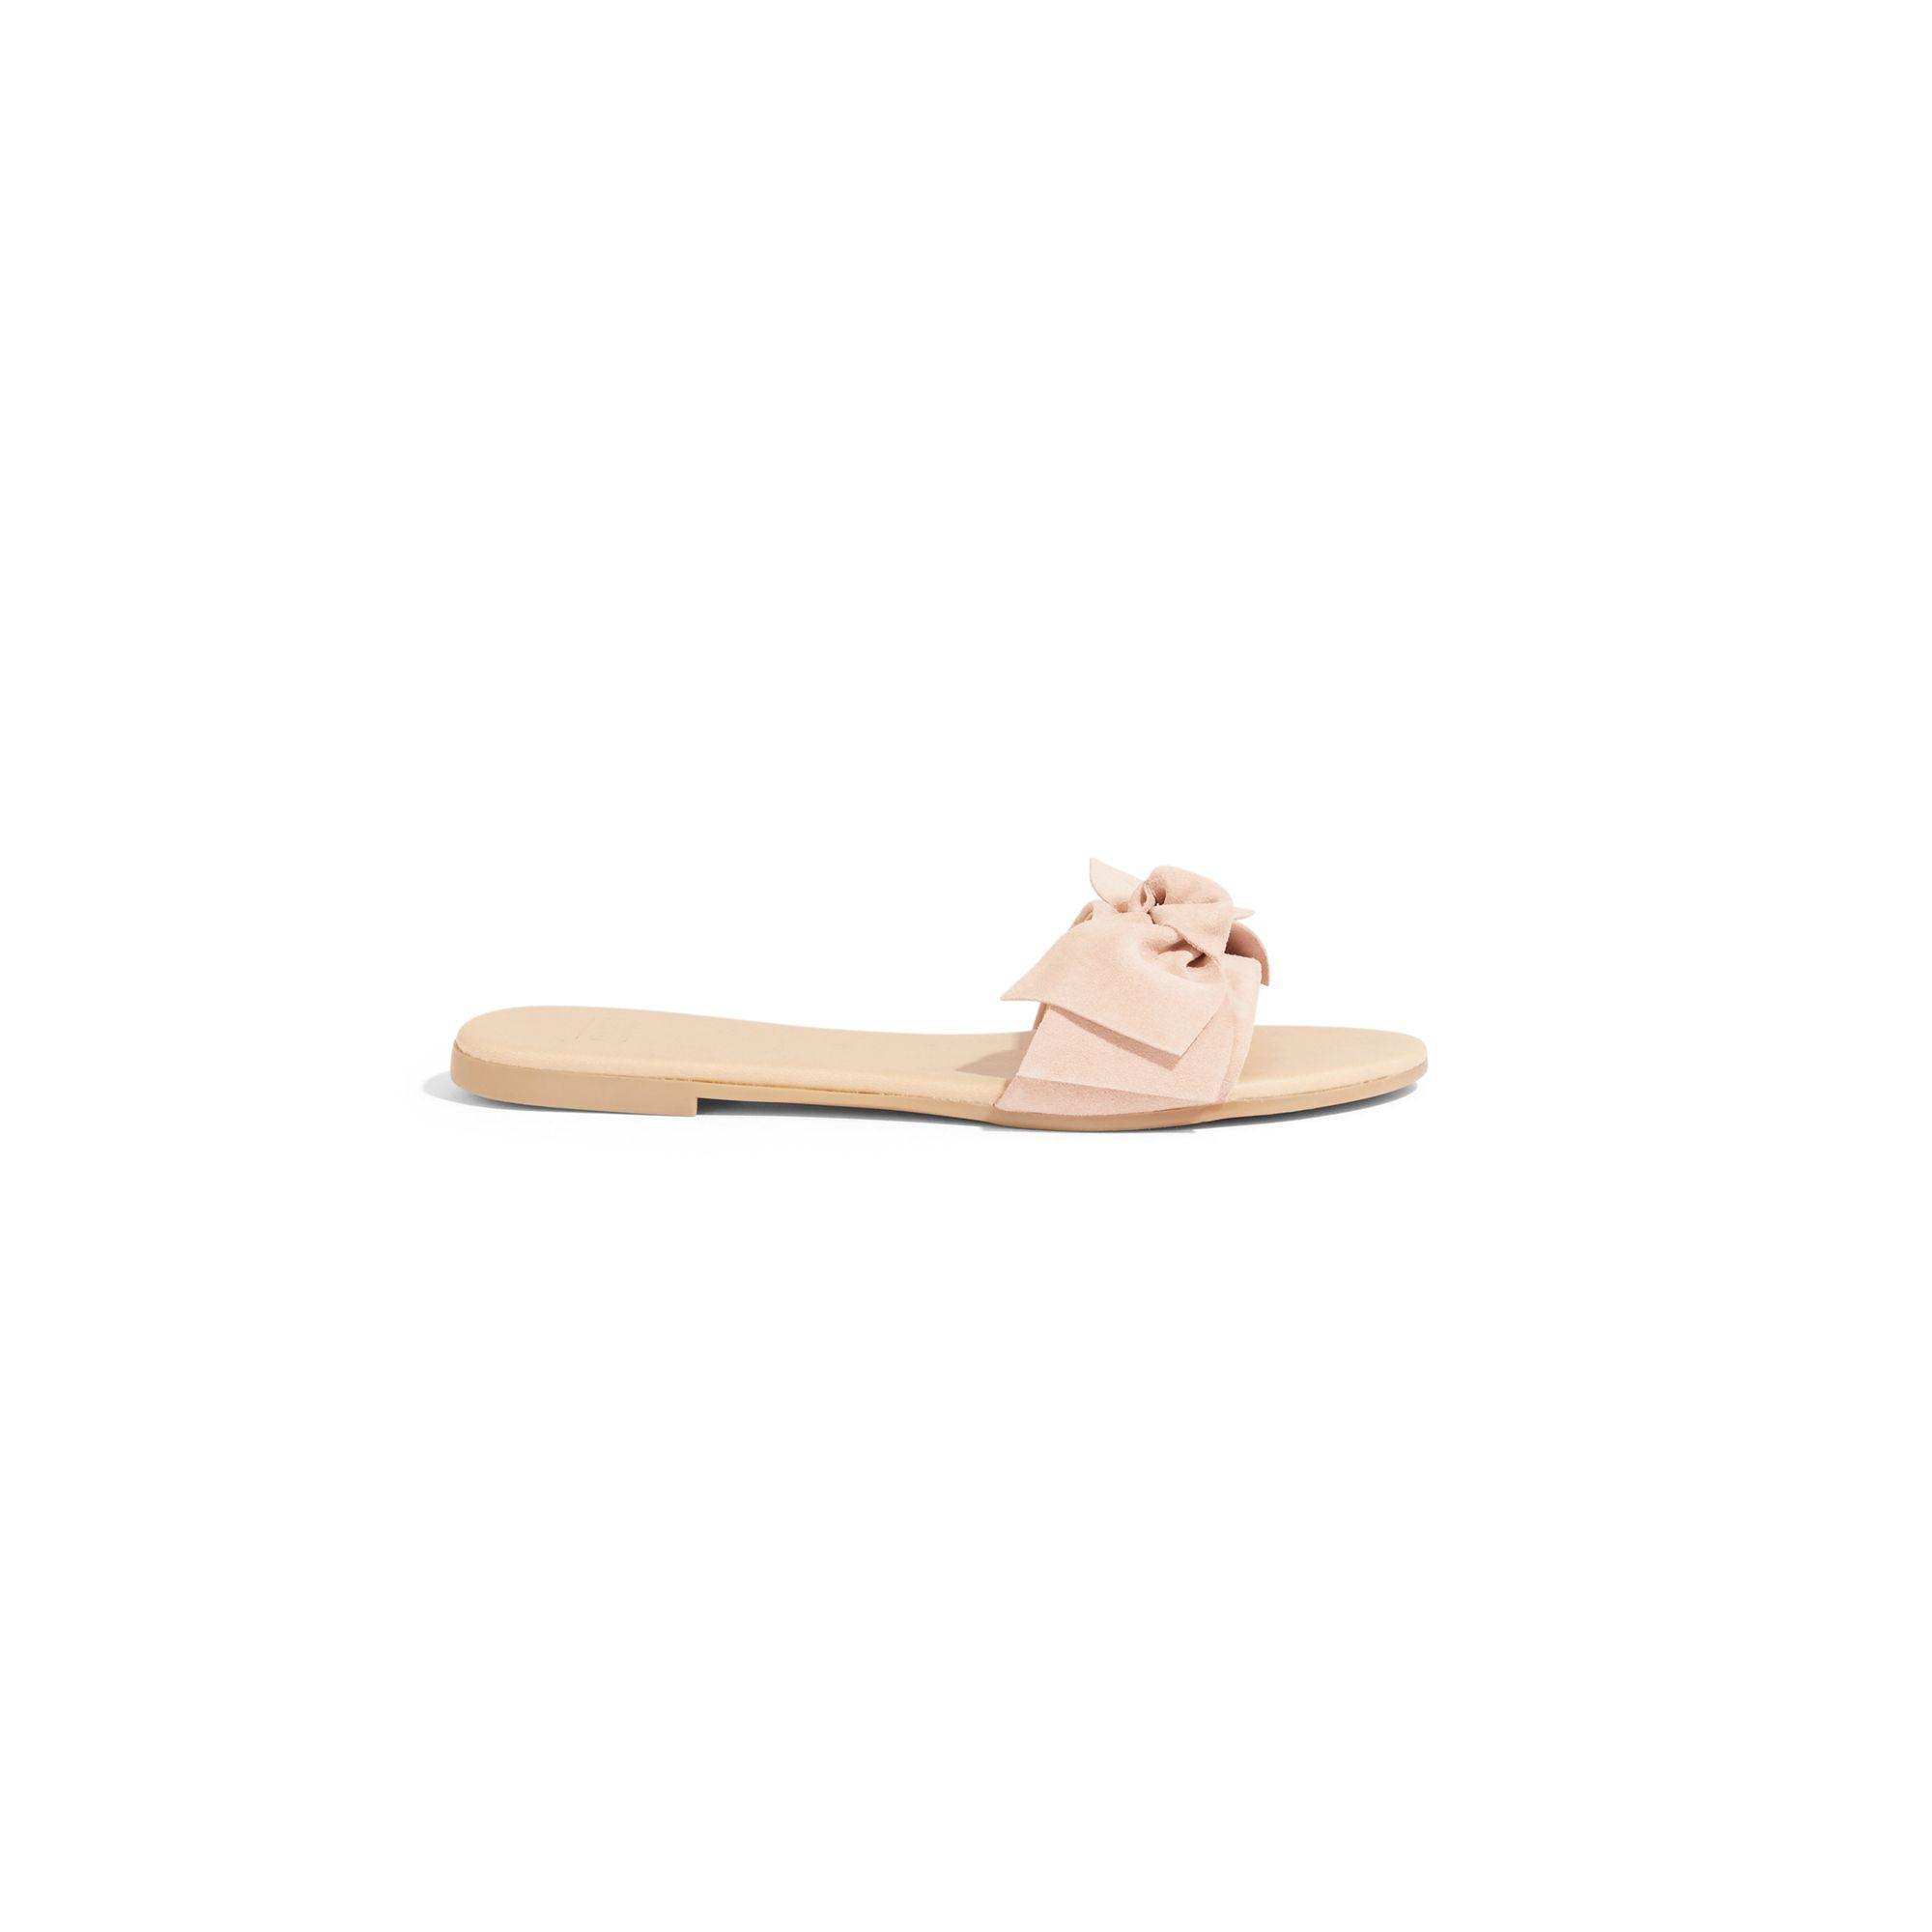 b4c11cd5bdb5 Oasis Nude Bow Sliders in Natural - Lyst